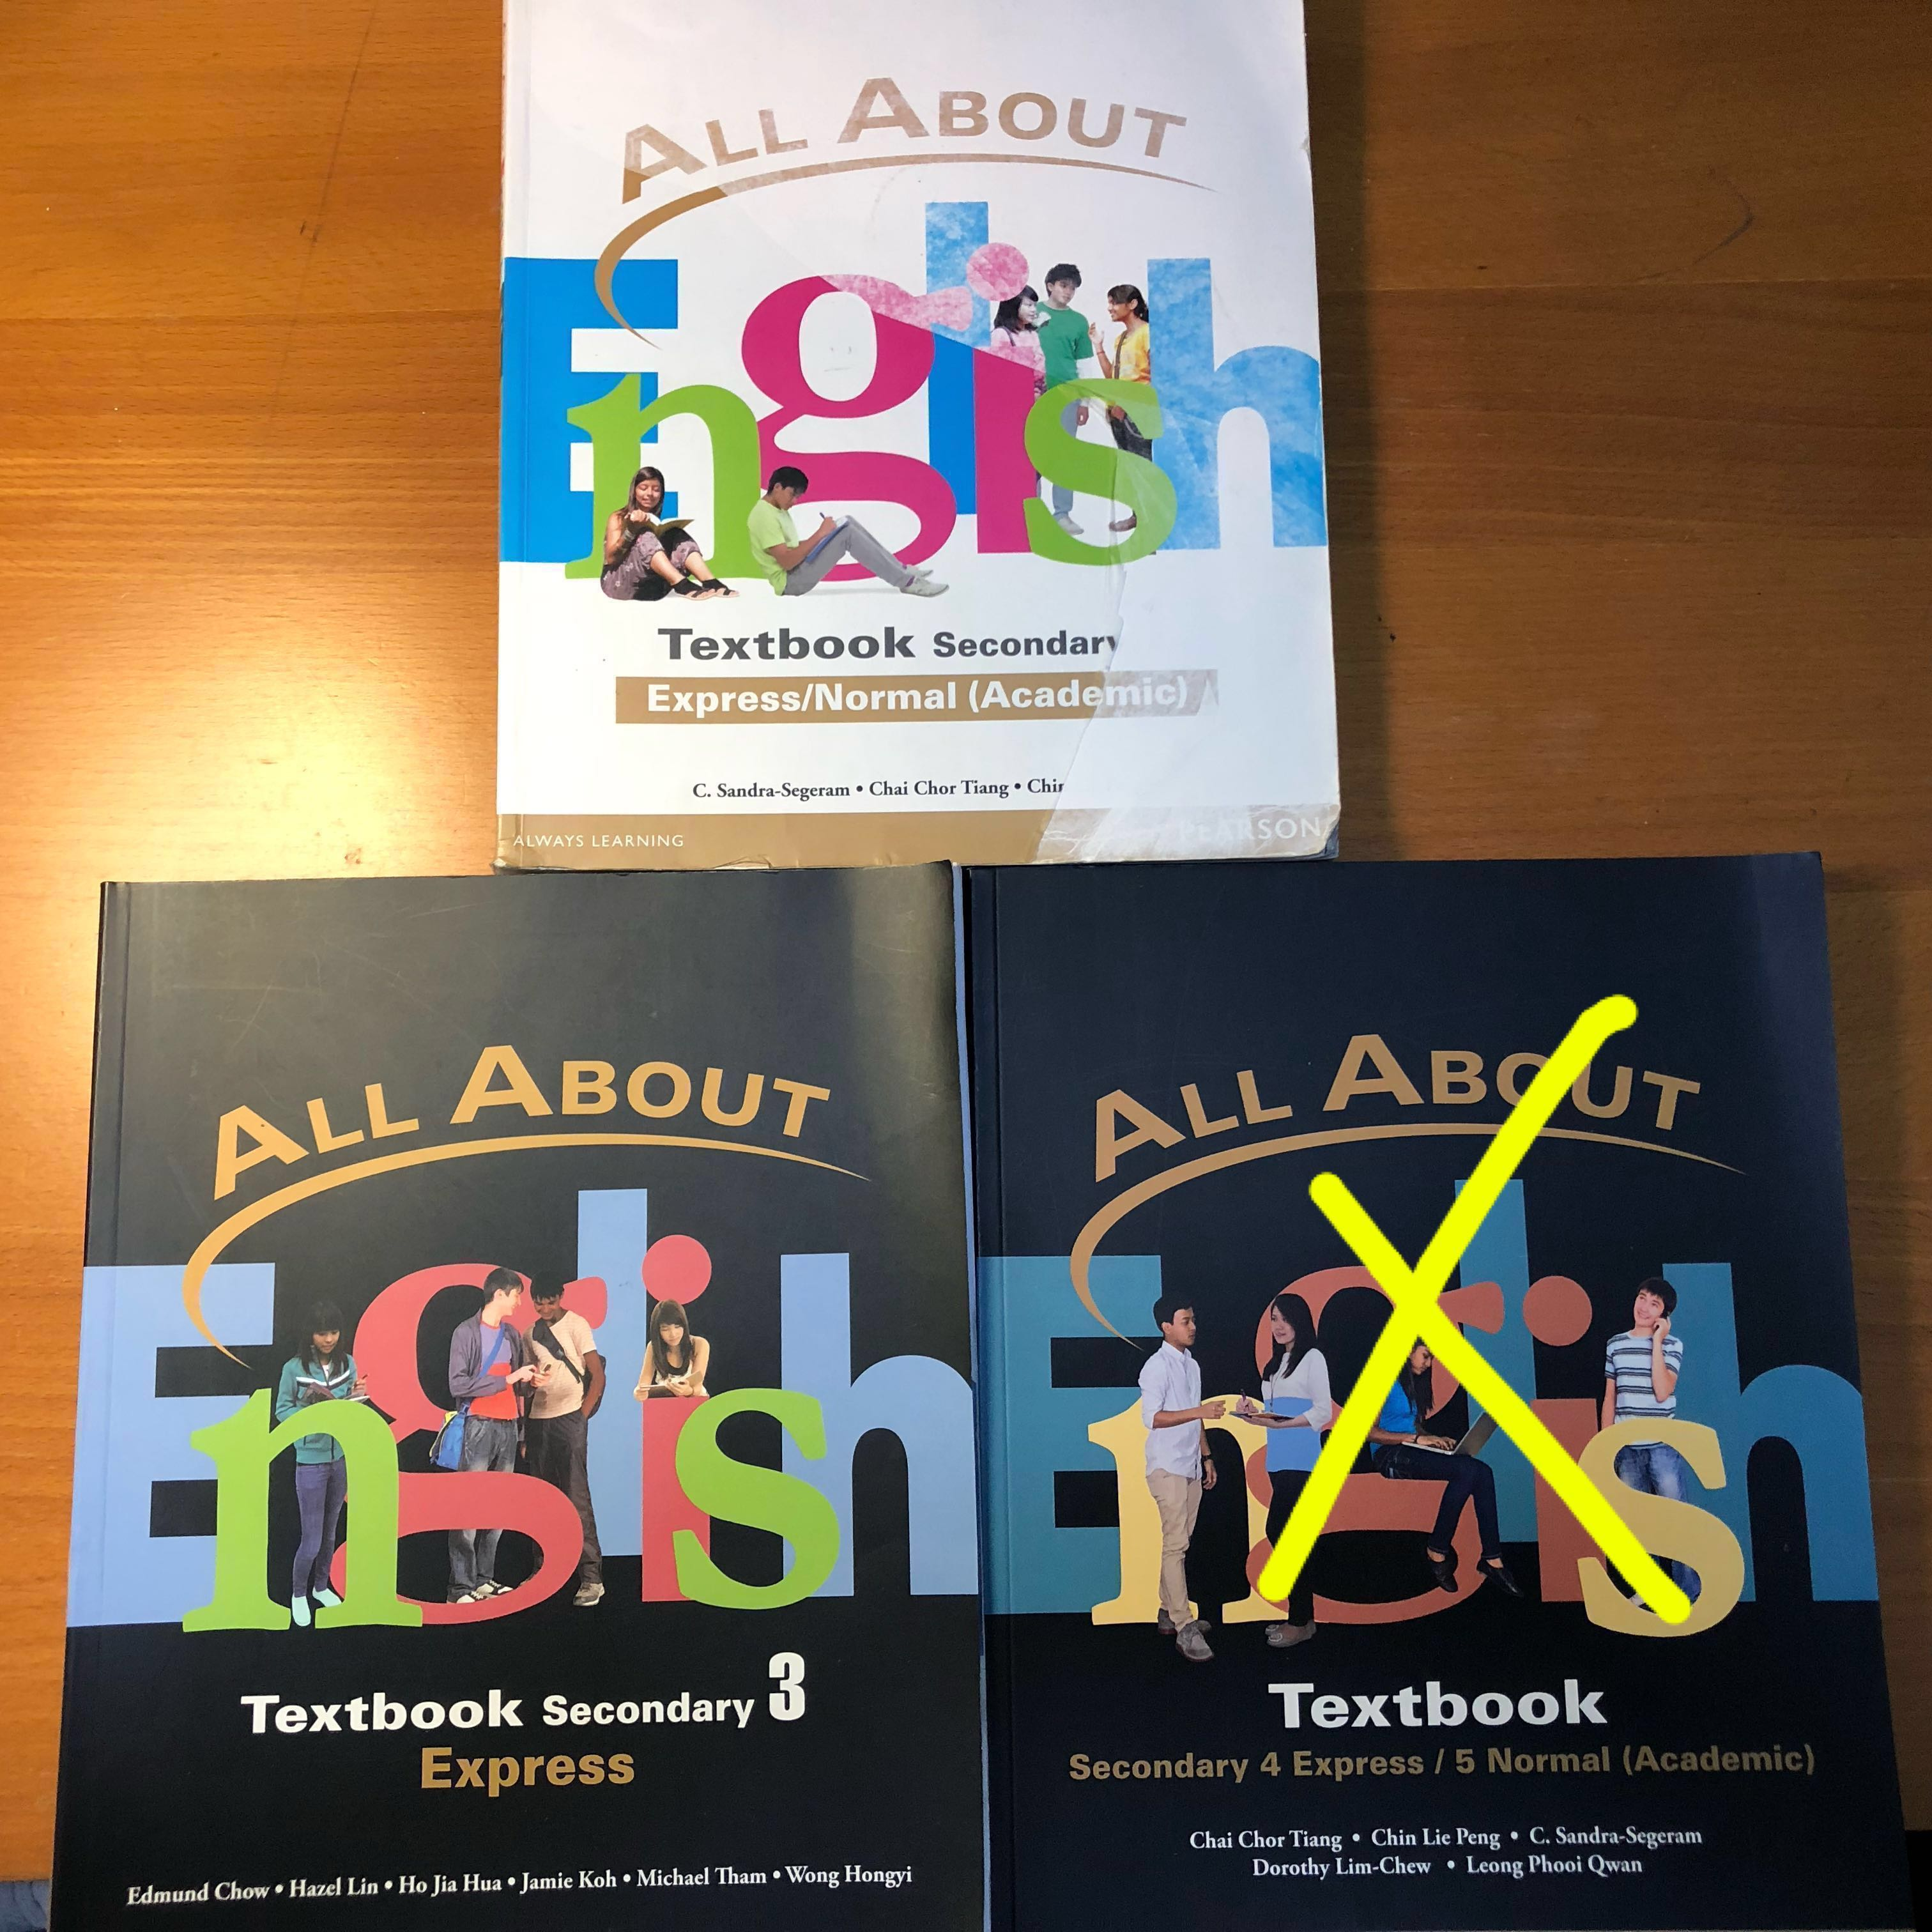 All About English Textbook (sec 1, 3, 4/5)